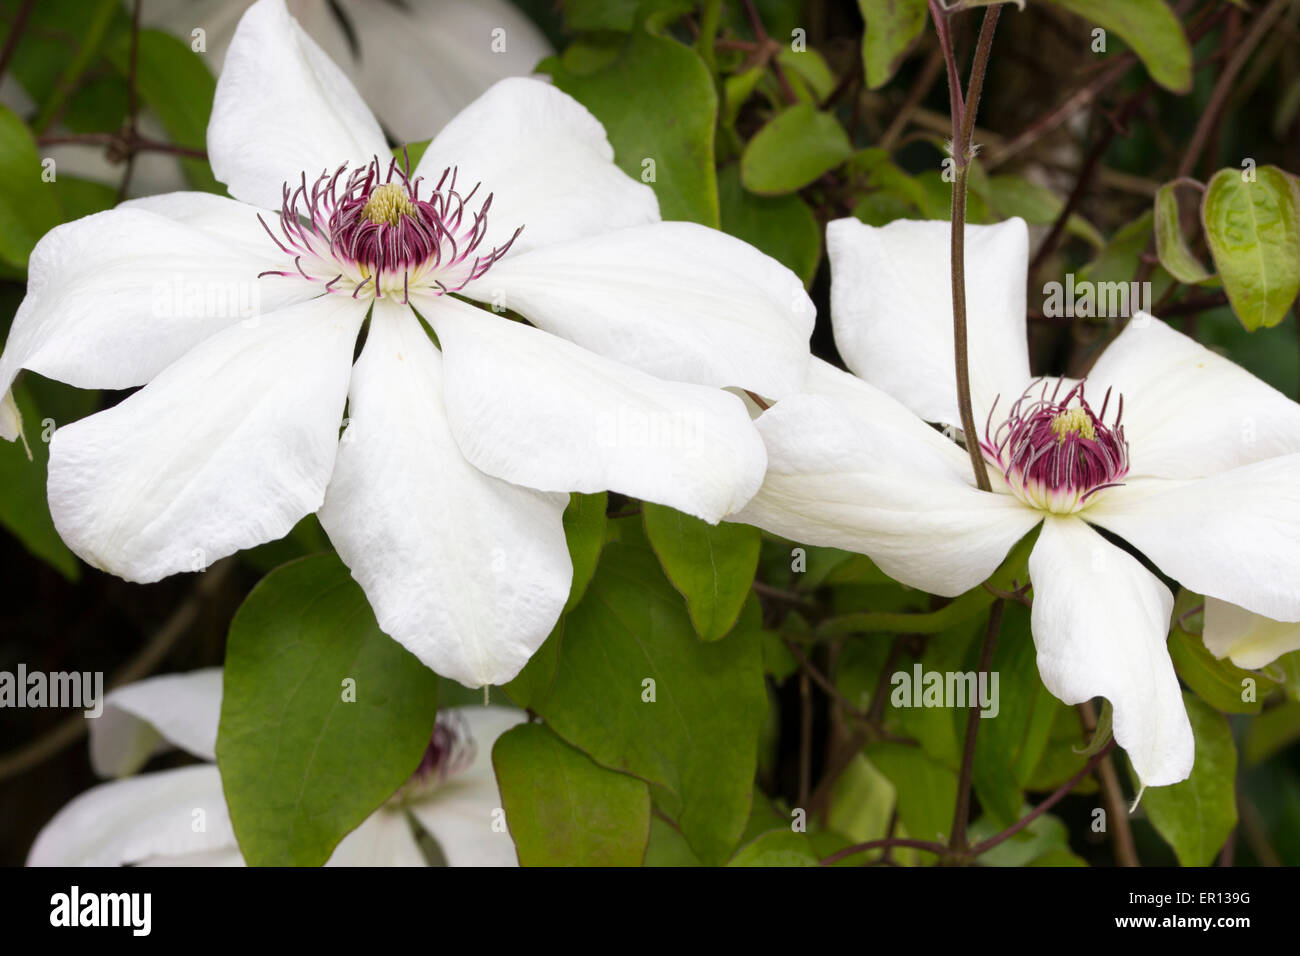 Large white flowers of the late spring flowering clematis miss large white flowers of the late spring flowering clematis miss bateman mightylinksfo Gallery